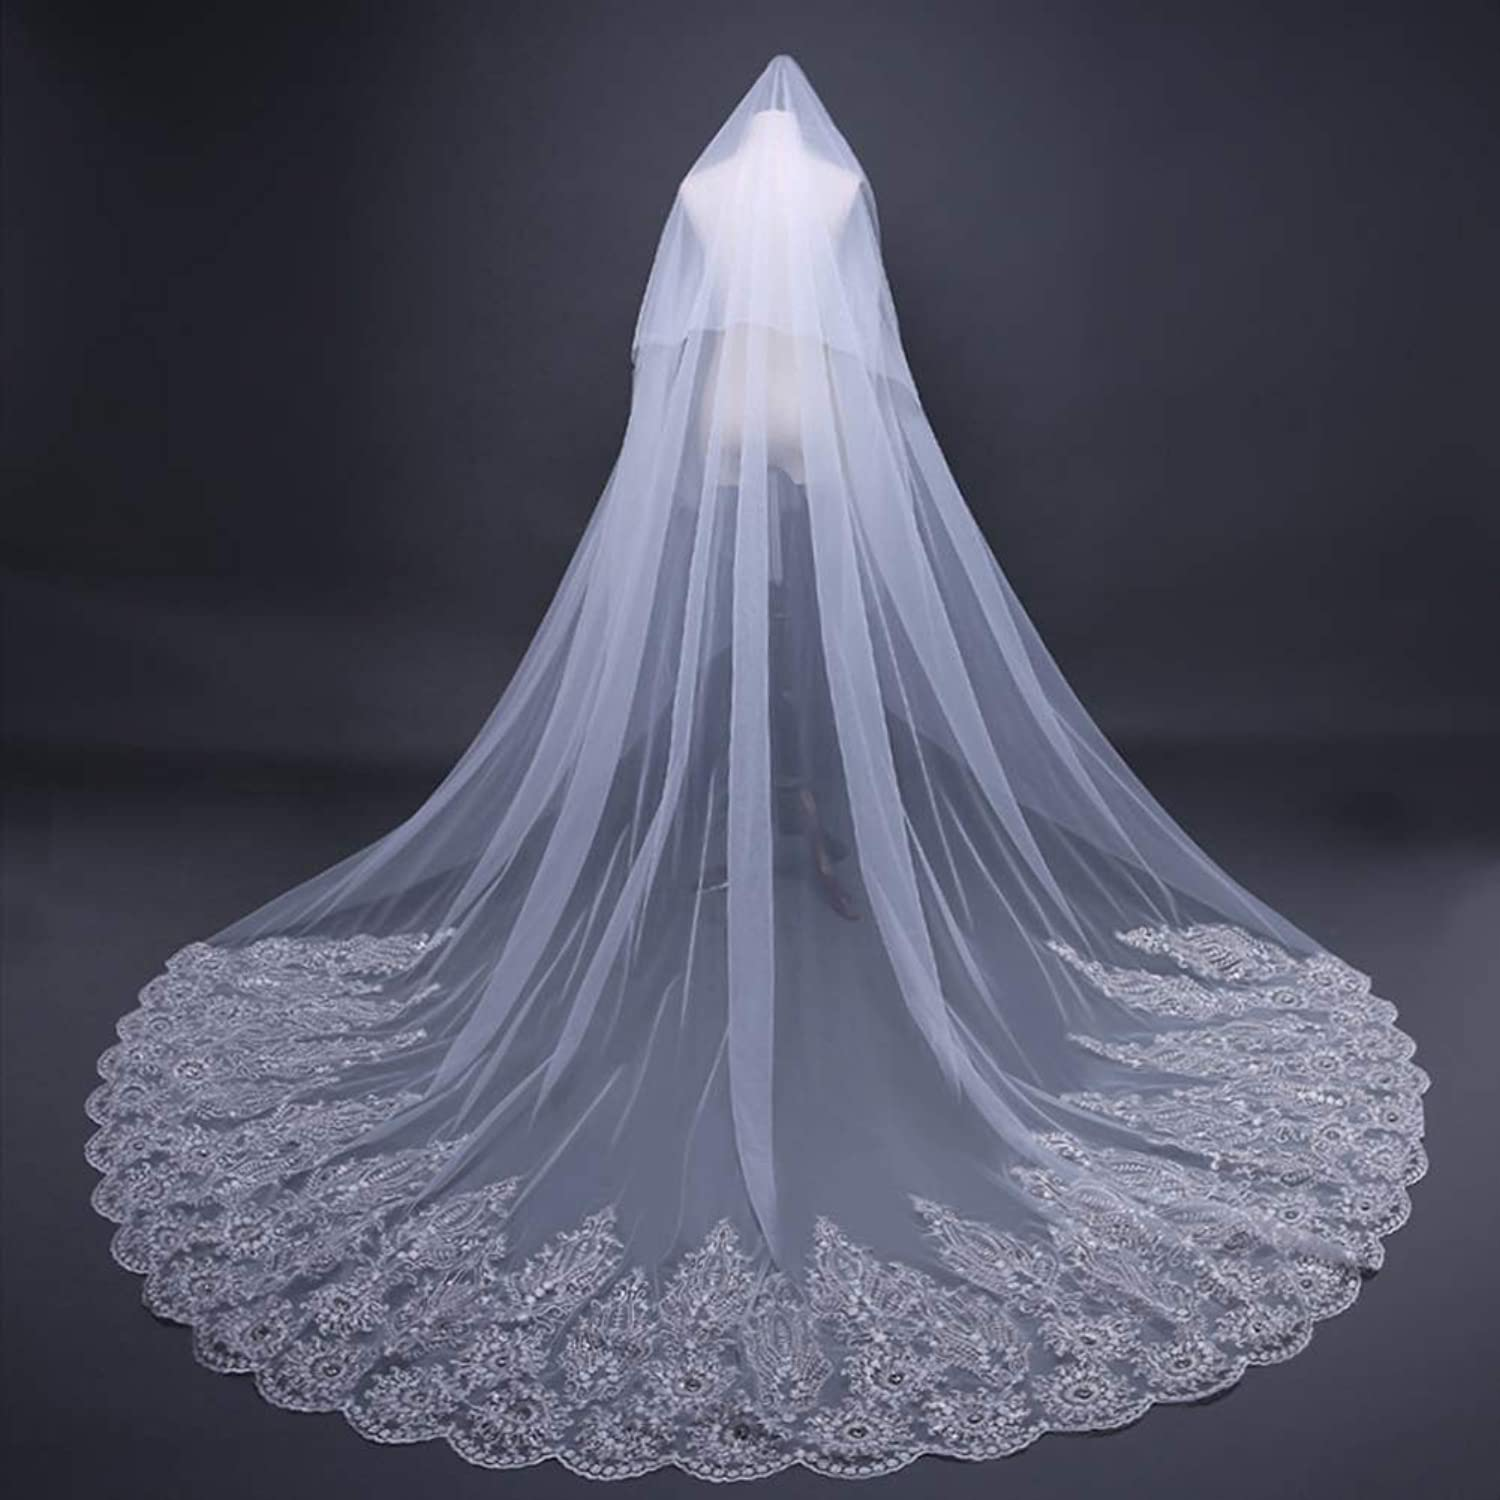 Bridal Wedding Veil,3M White Bridal Cathedral Comb Wedding Veil with Long Lace Edge Mosaic Glass Drill,Veil,3.8  3